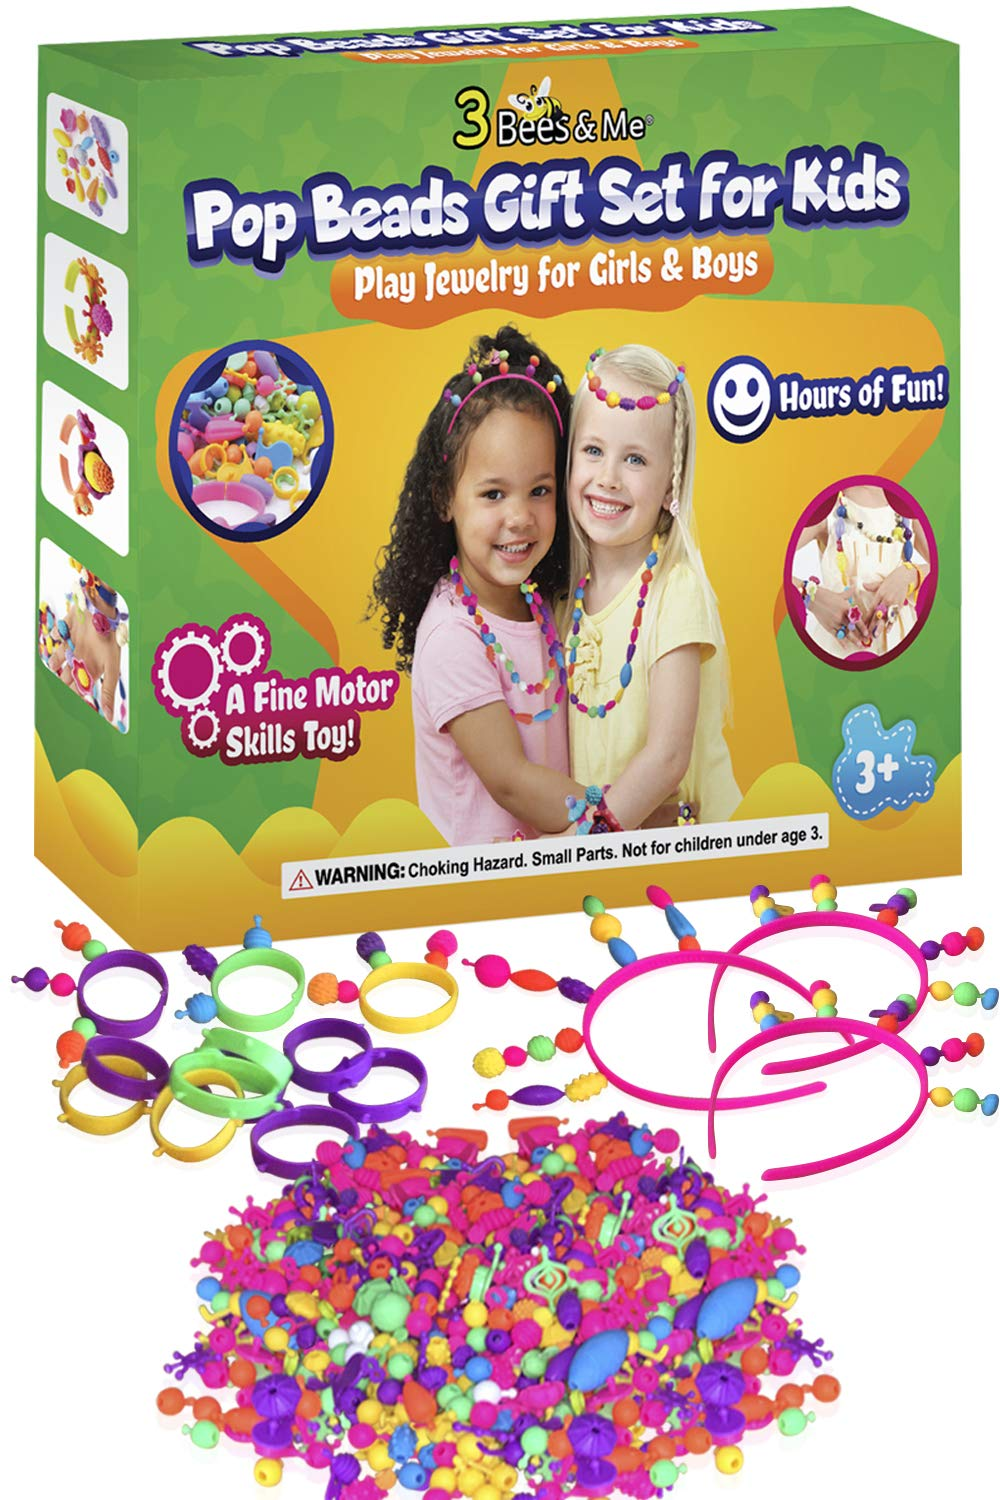 3 Bees & Me Pop Beads for Girls & Kids Age 3 4 5 6 7 8 - Fun Jewelry Making Kit, 500 Snap Beads Set by 3 Bees & Me